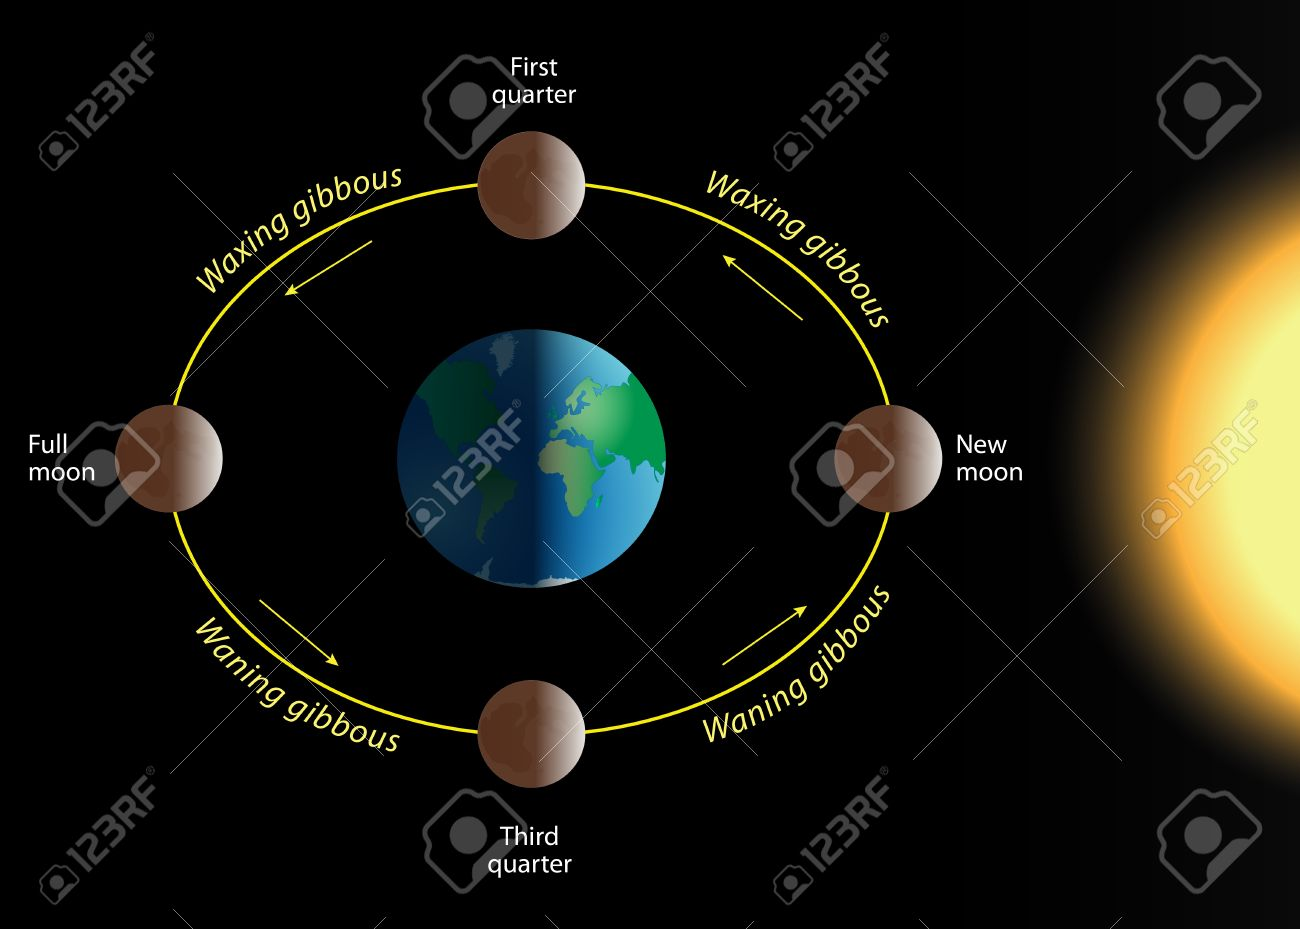 Phase of the moon the relation of the phases of the moon with phase of the moon the relation of the phases of the moon with its revolution around pooptronica Choice Image